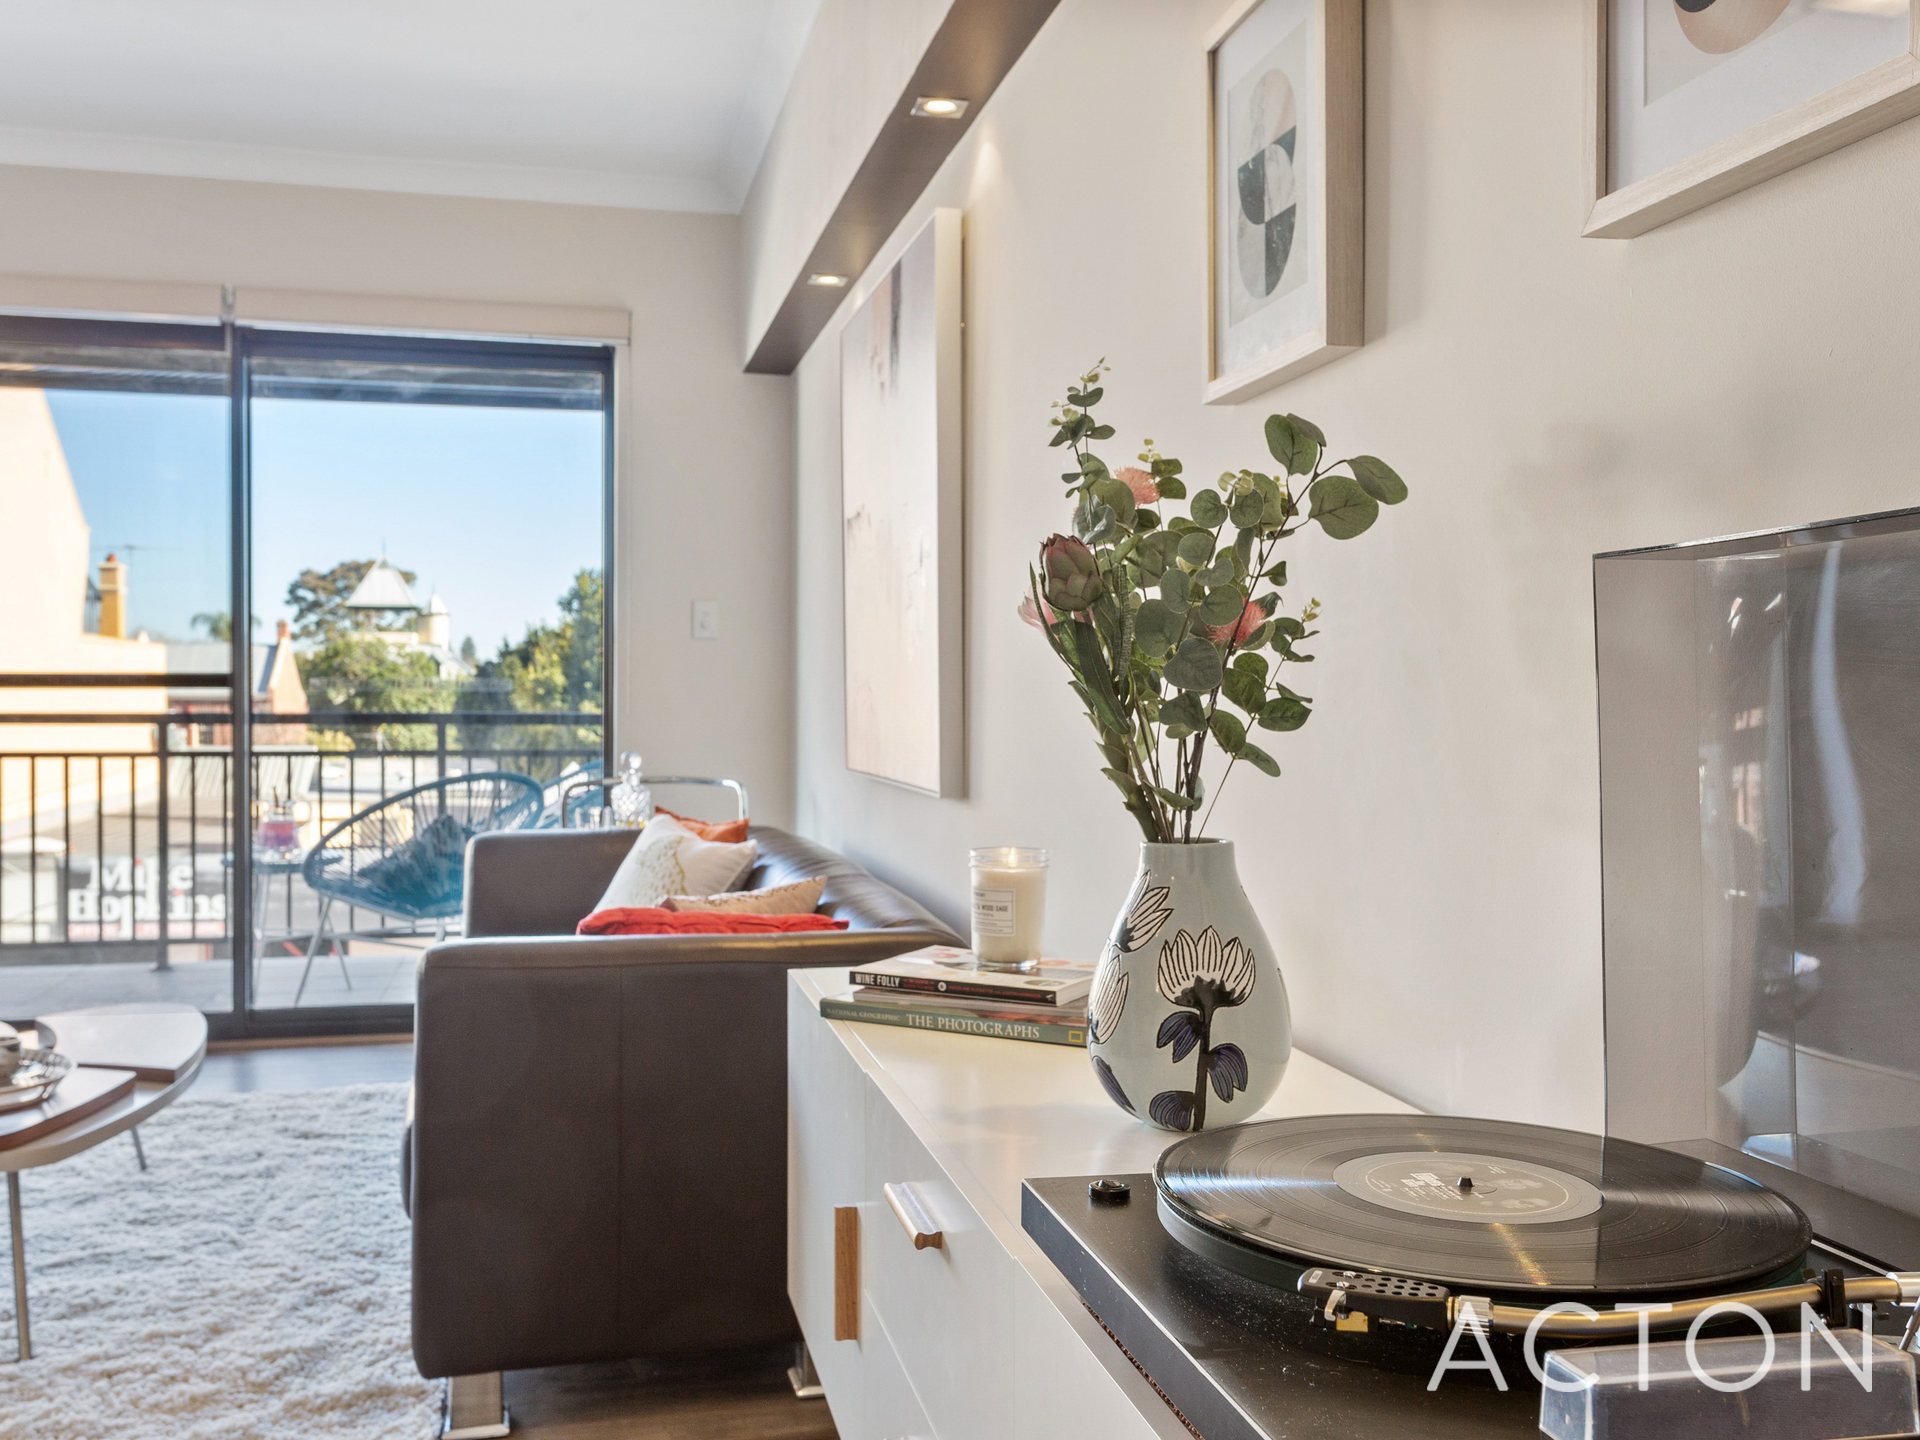 32/250 Beaufort Street Perth - Apartment For Sale - 21108544 - ACTON Mount Lawley